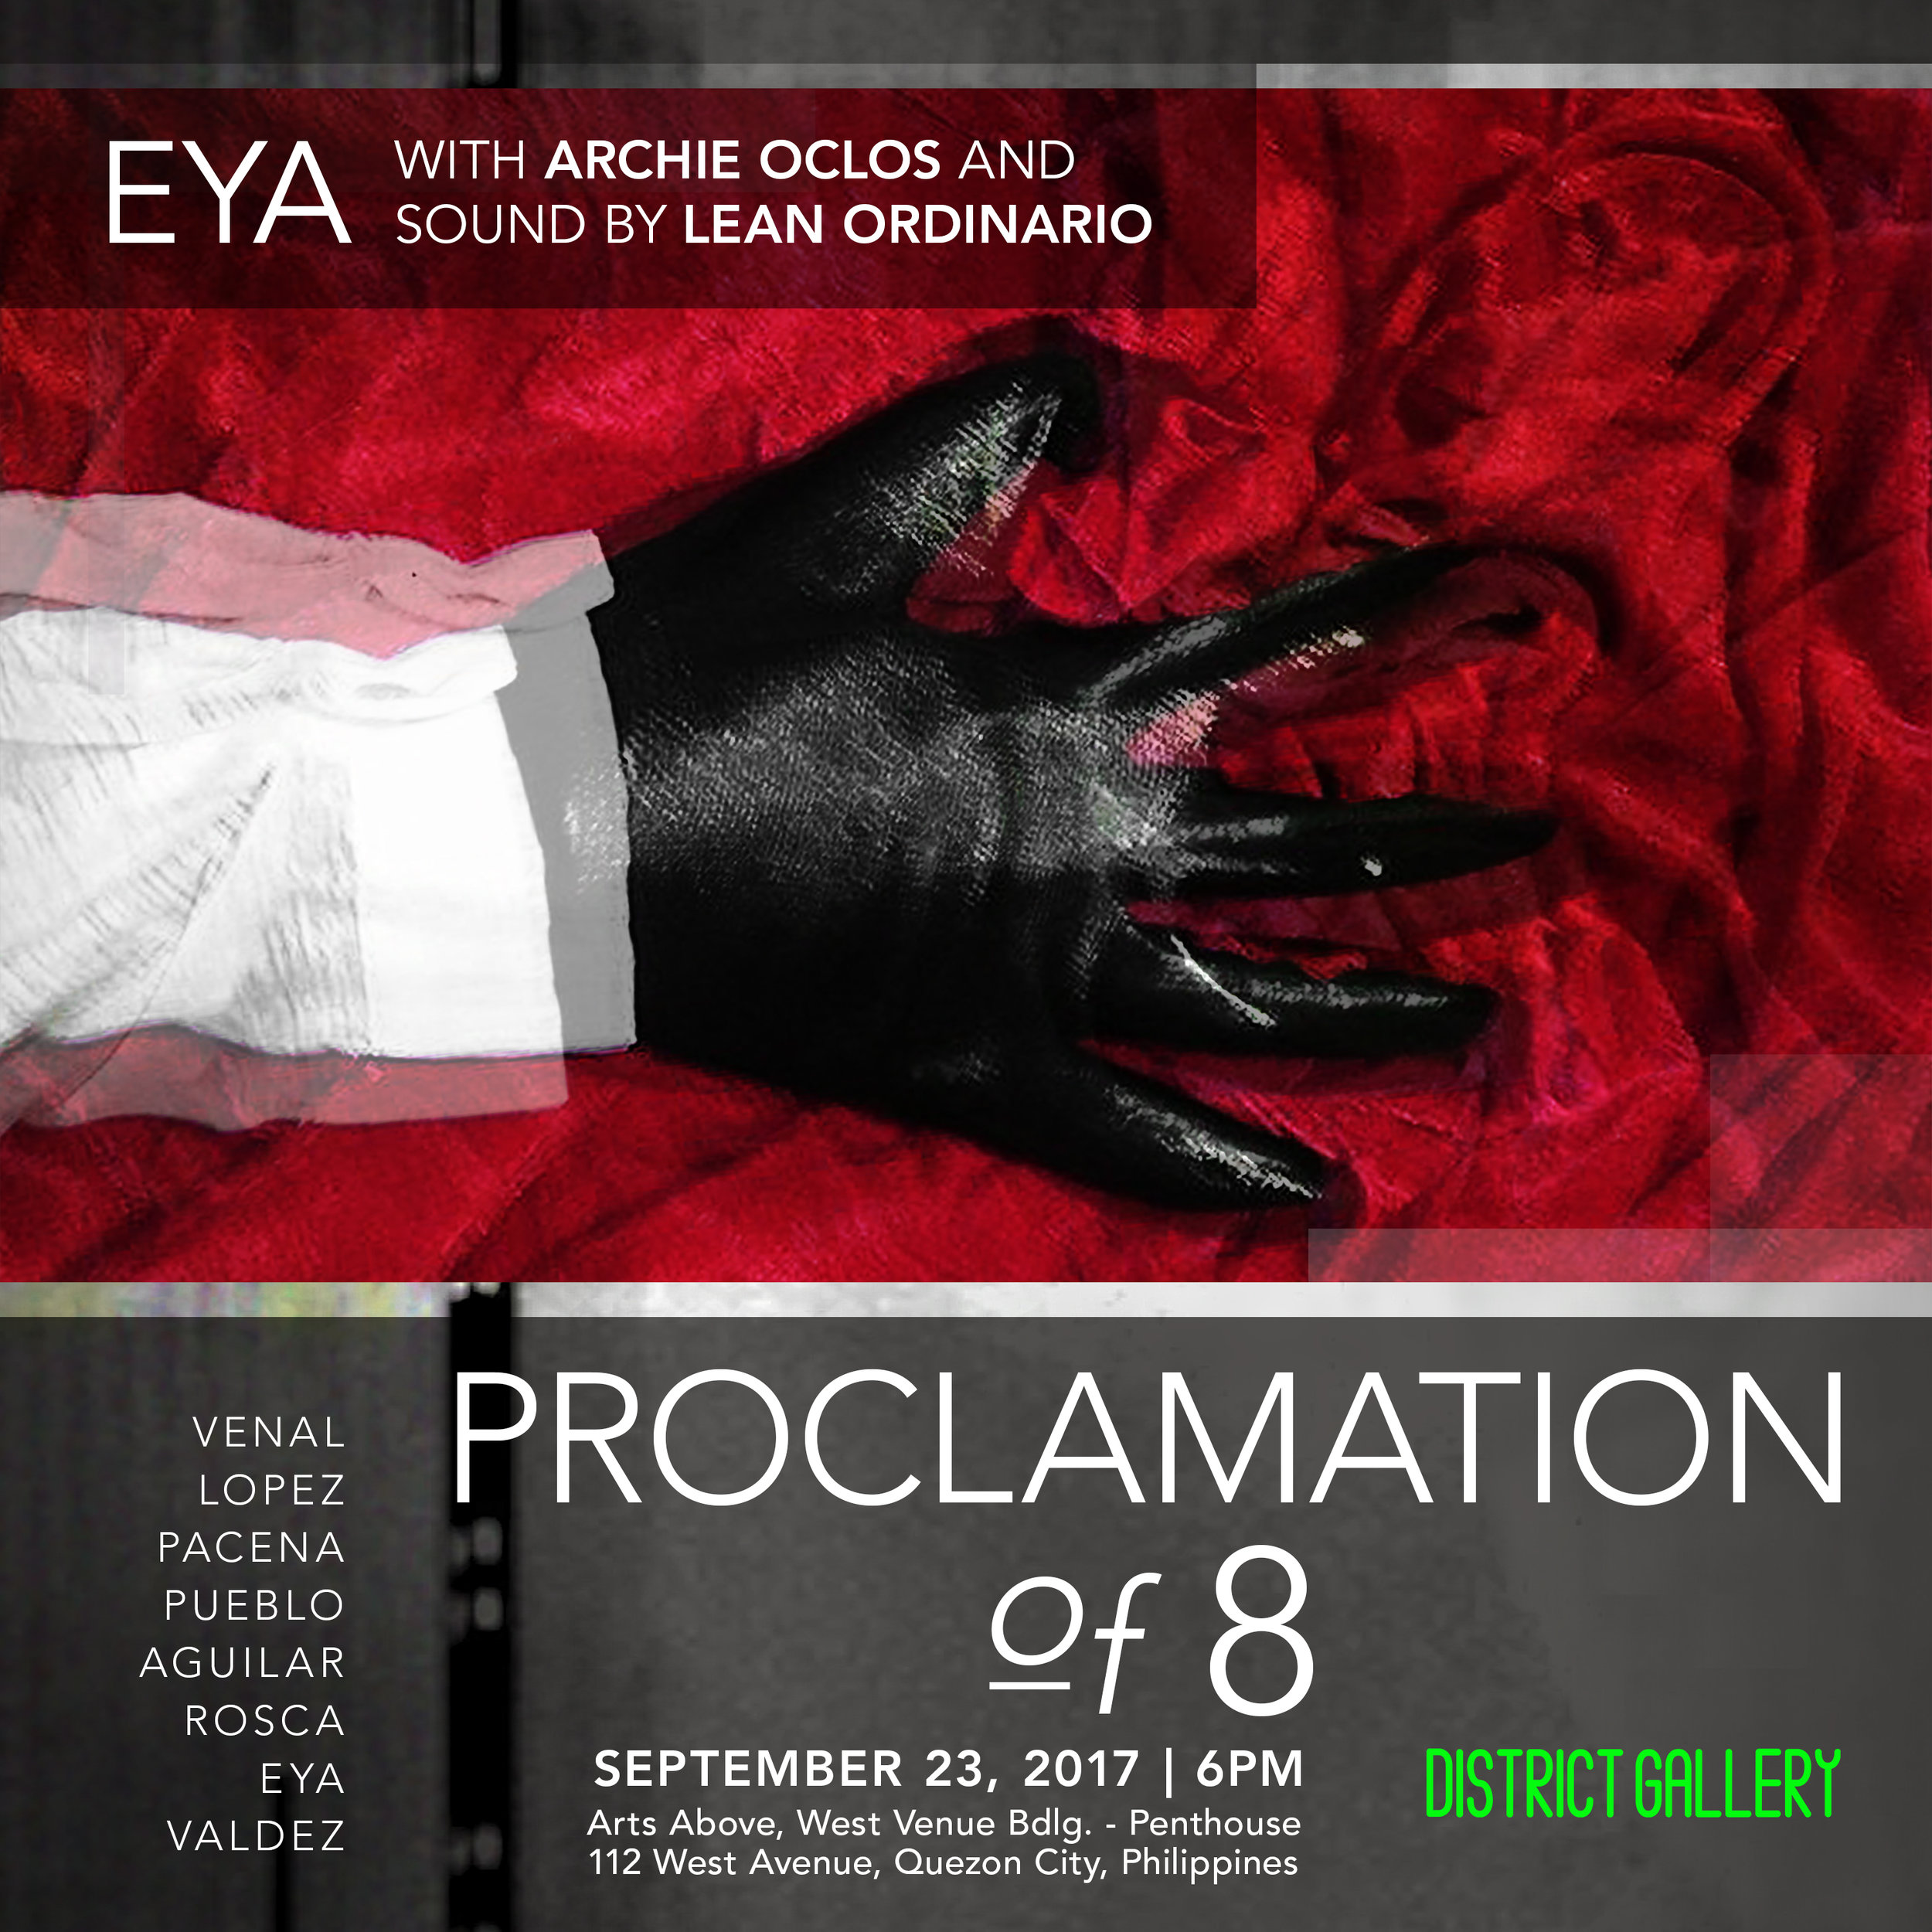 7 PROCLAMATION of Eya.jpg